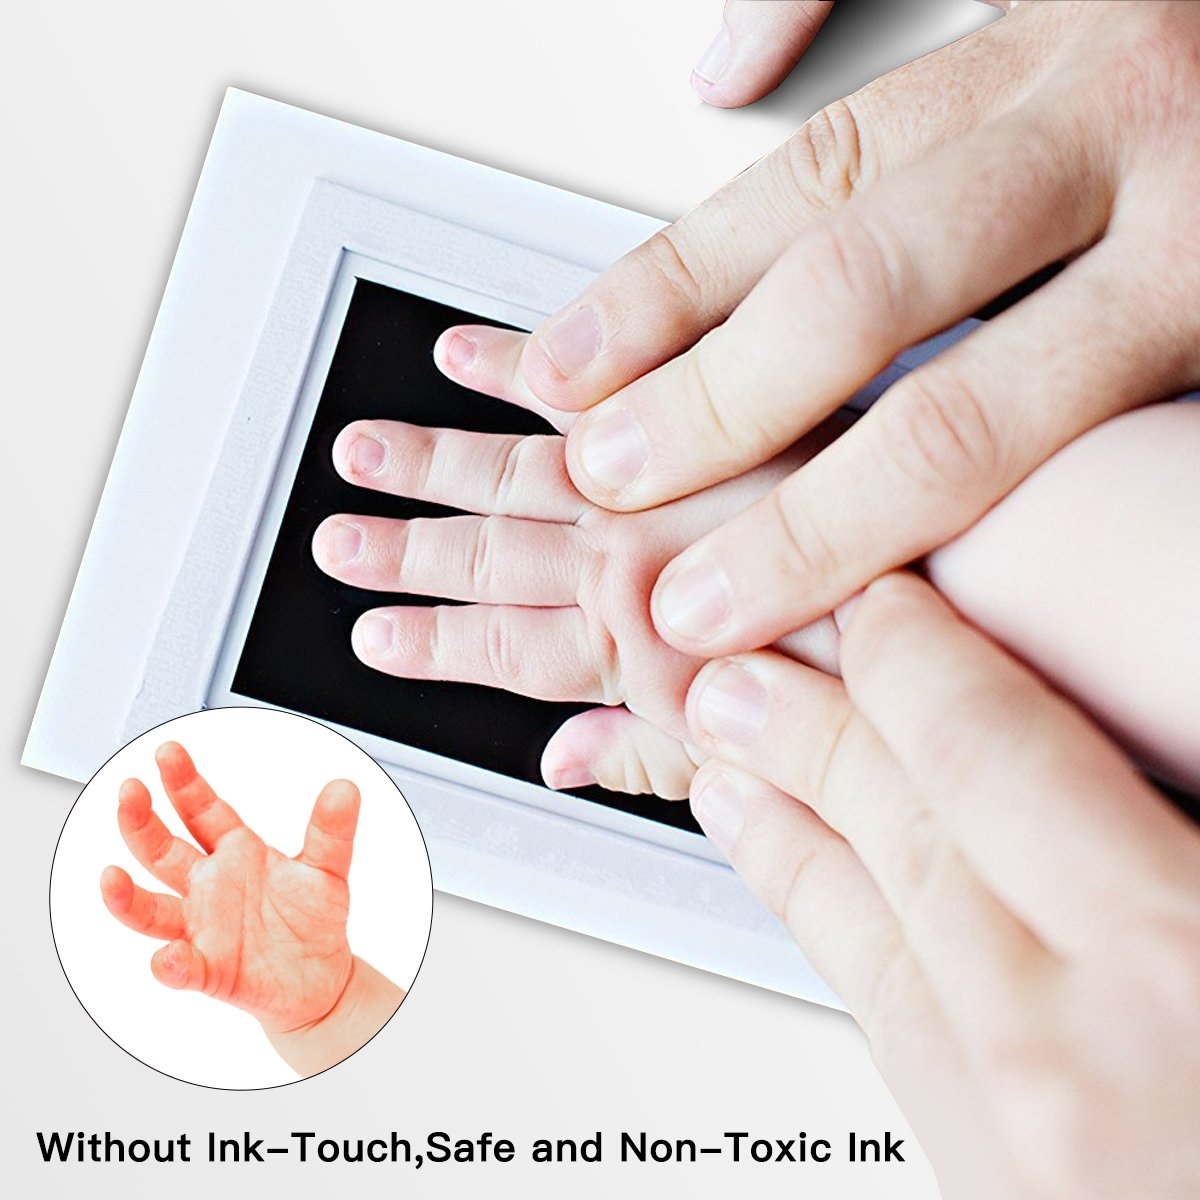 Baby Handprint and Footprint Photo Frame Kit by TopSuccess Without Ink-Touch,Safe and Non-Toxic Ink Print Kit for Baby Babyprints Inkpad Best for Newborn Baby Gifts GM10 (Black) by TopSuccess (Image #4)